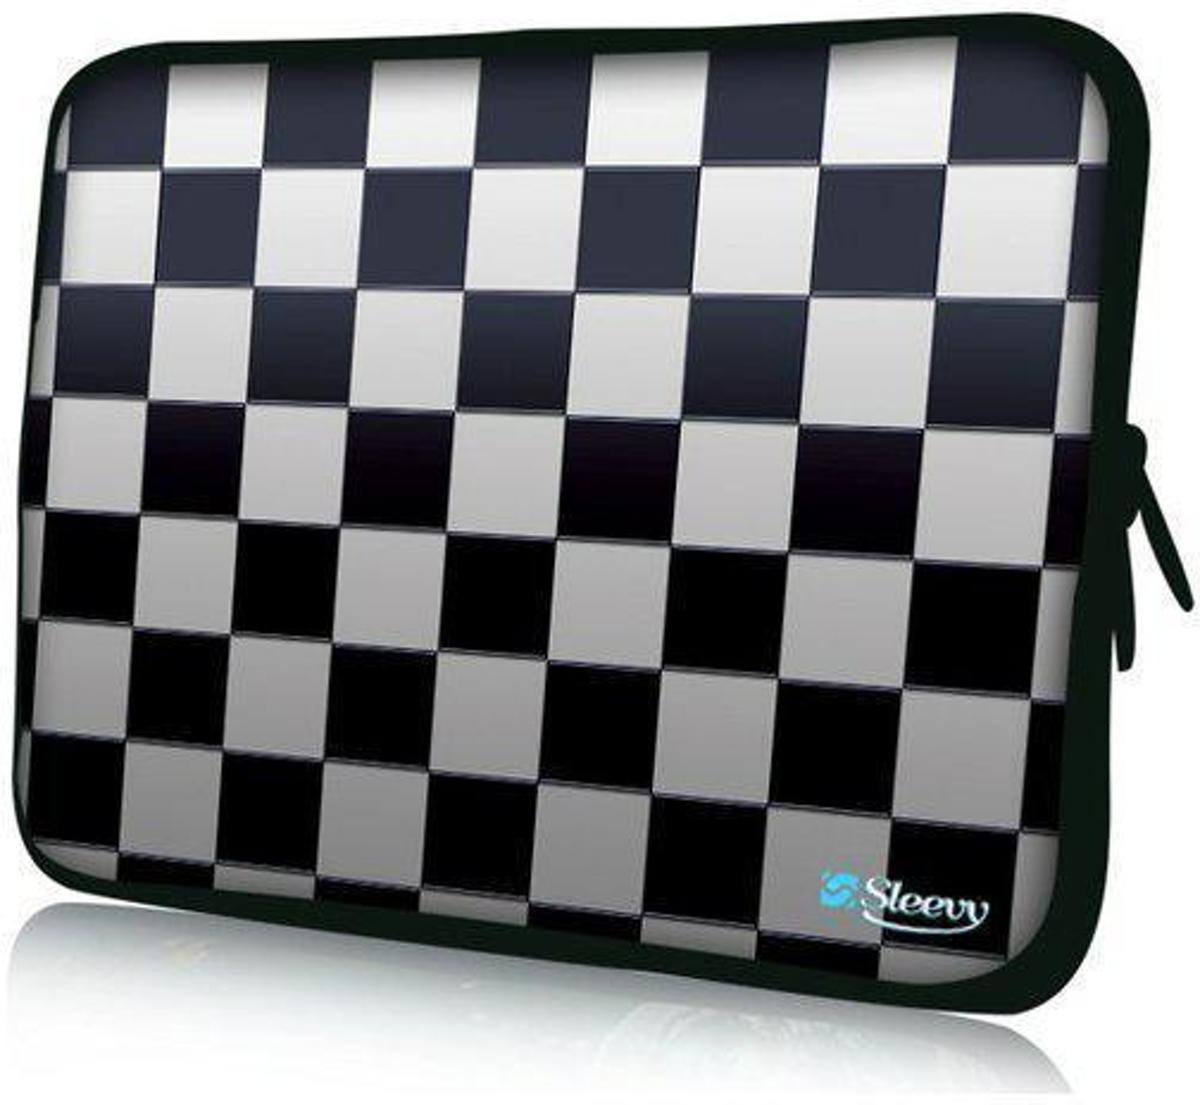 Sleevy 10 laptop/tablet hoes schaakbord - tabletsleeve - tablet sleeve - ipad sleeve